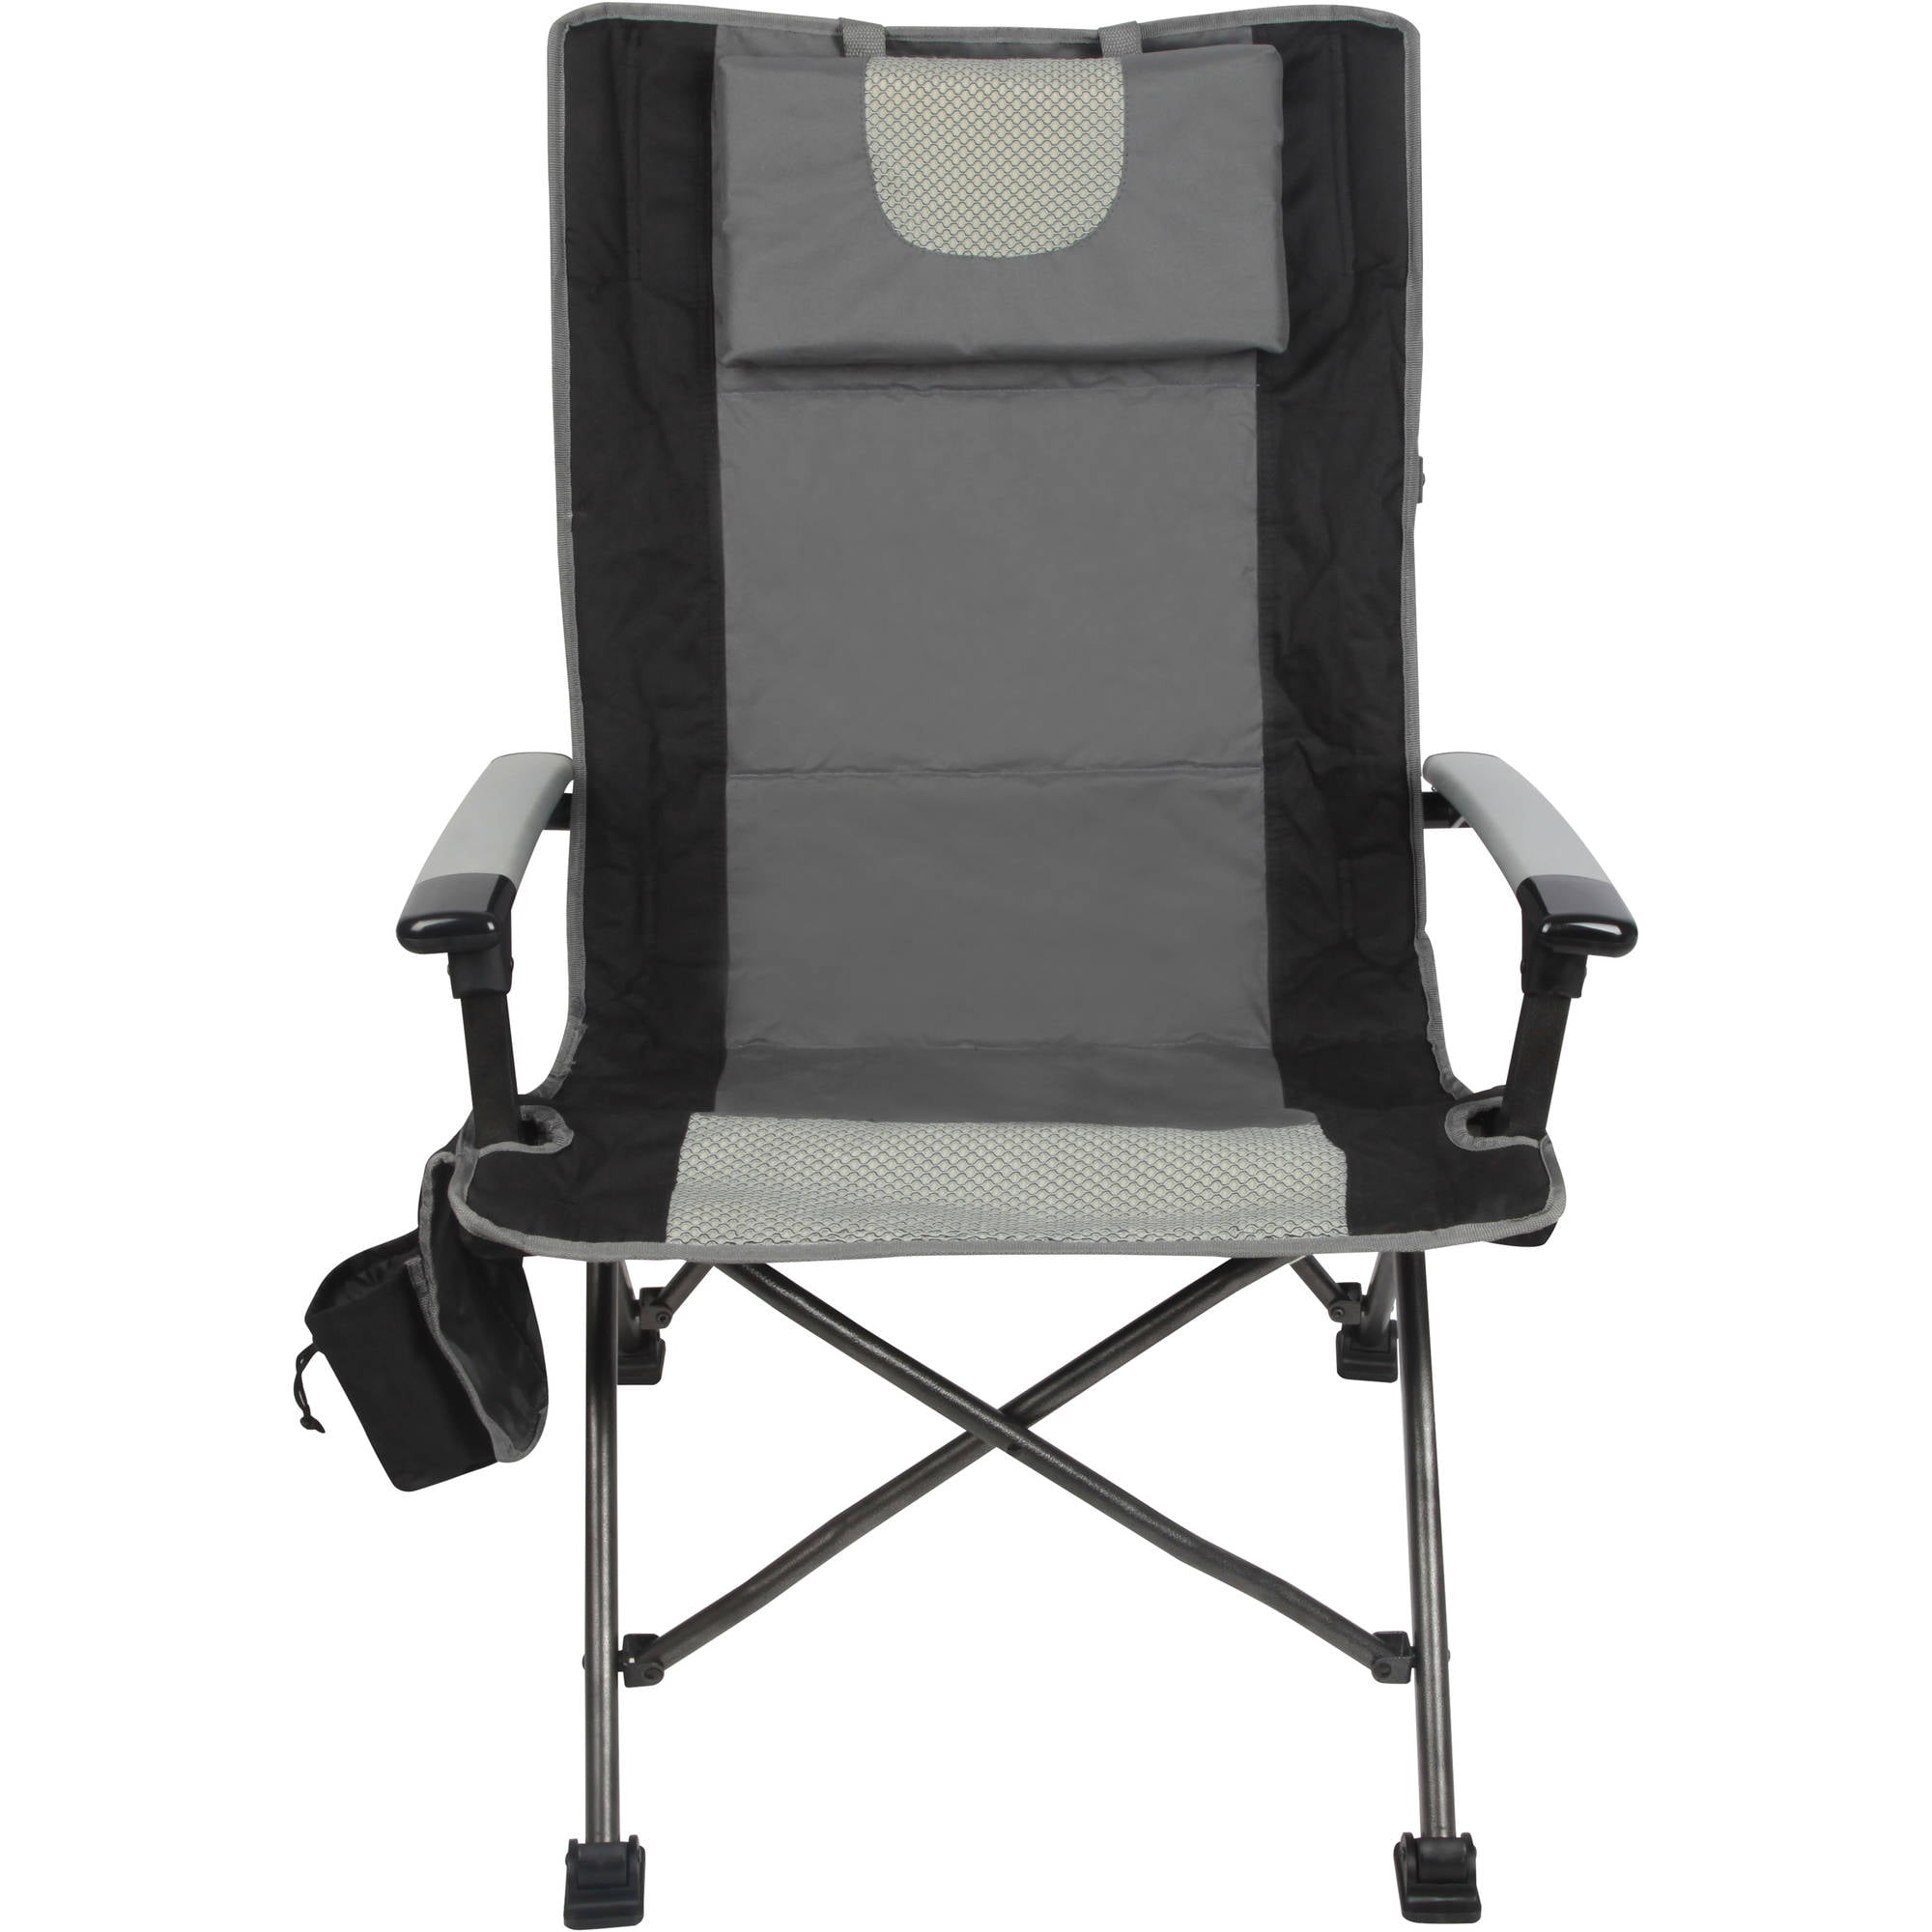 outdoor high back folding chair with headrest set of 2 comfortable camping seat ebay. Black Bedroom Furniture Sets. Home Design Ideas